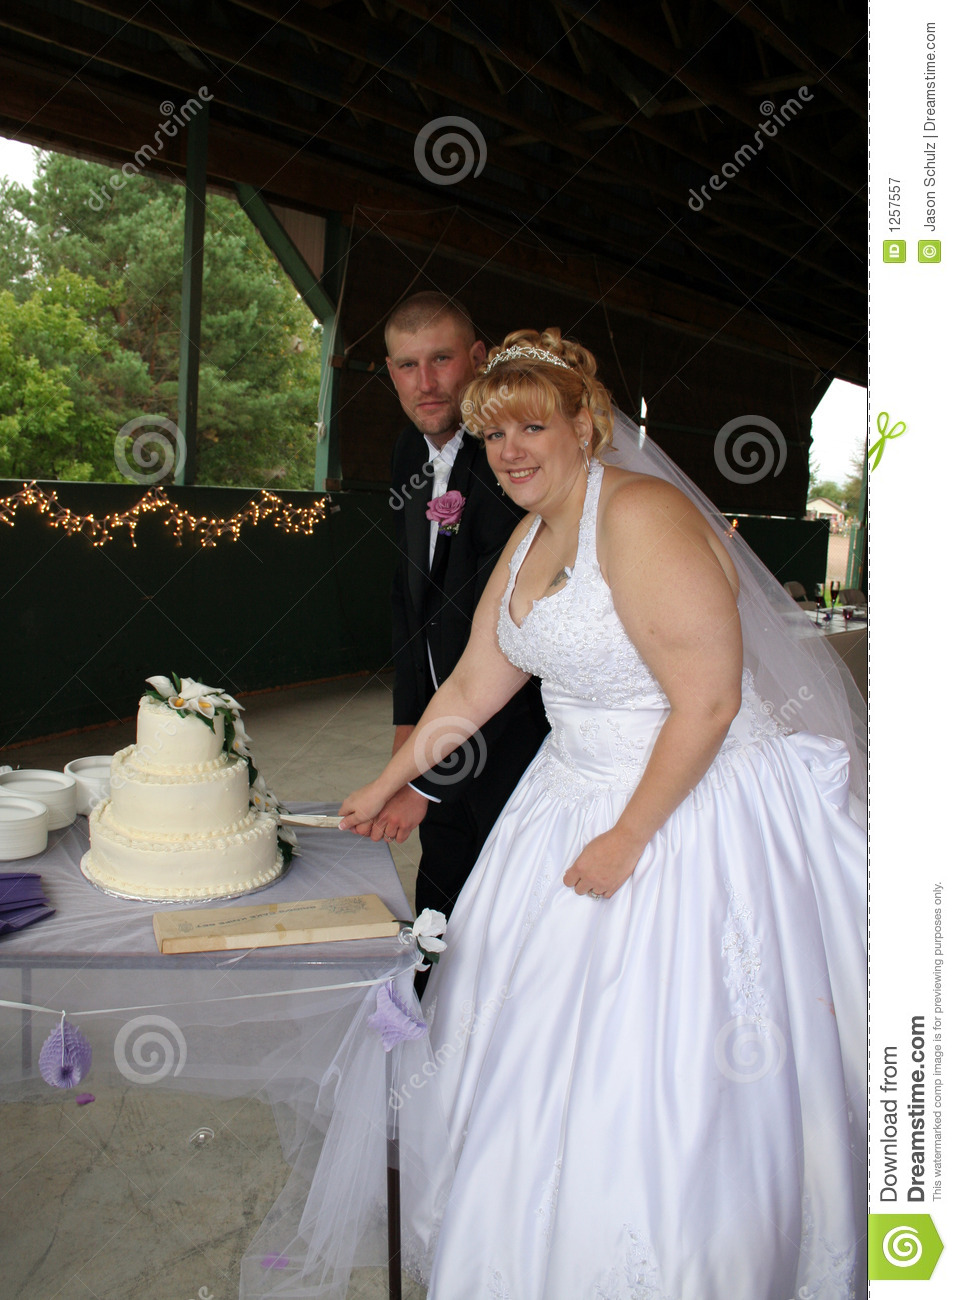 country songs to cut the wedding cake and groom cutting wedding cake royalty free stock 12986